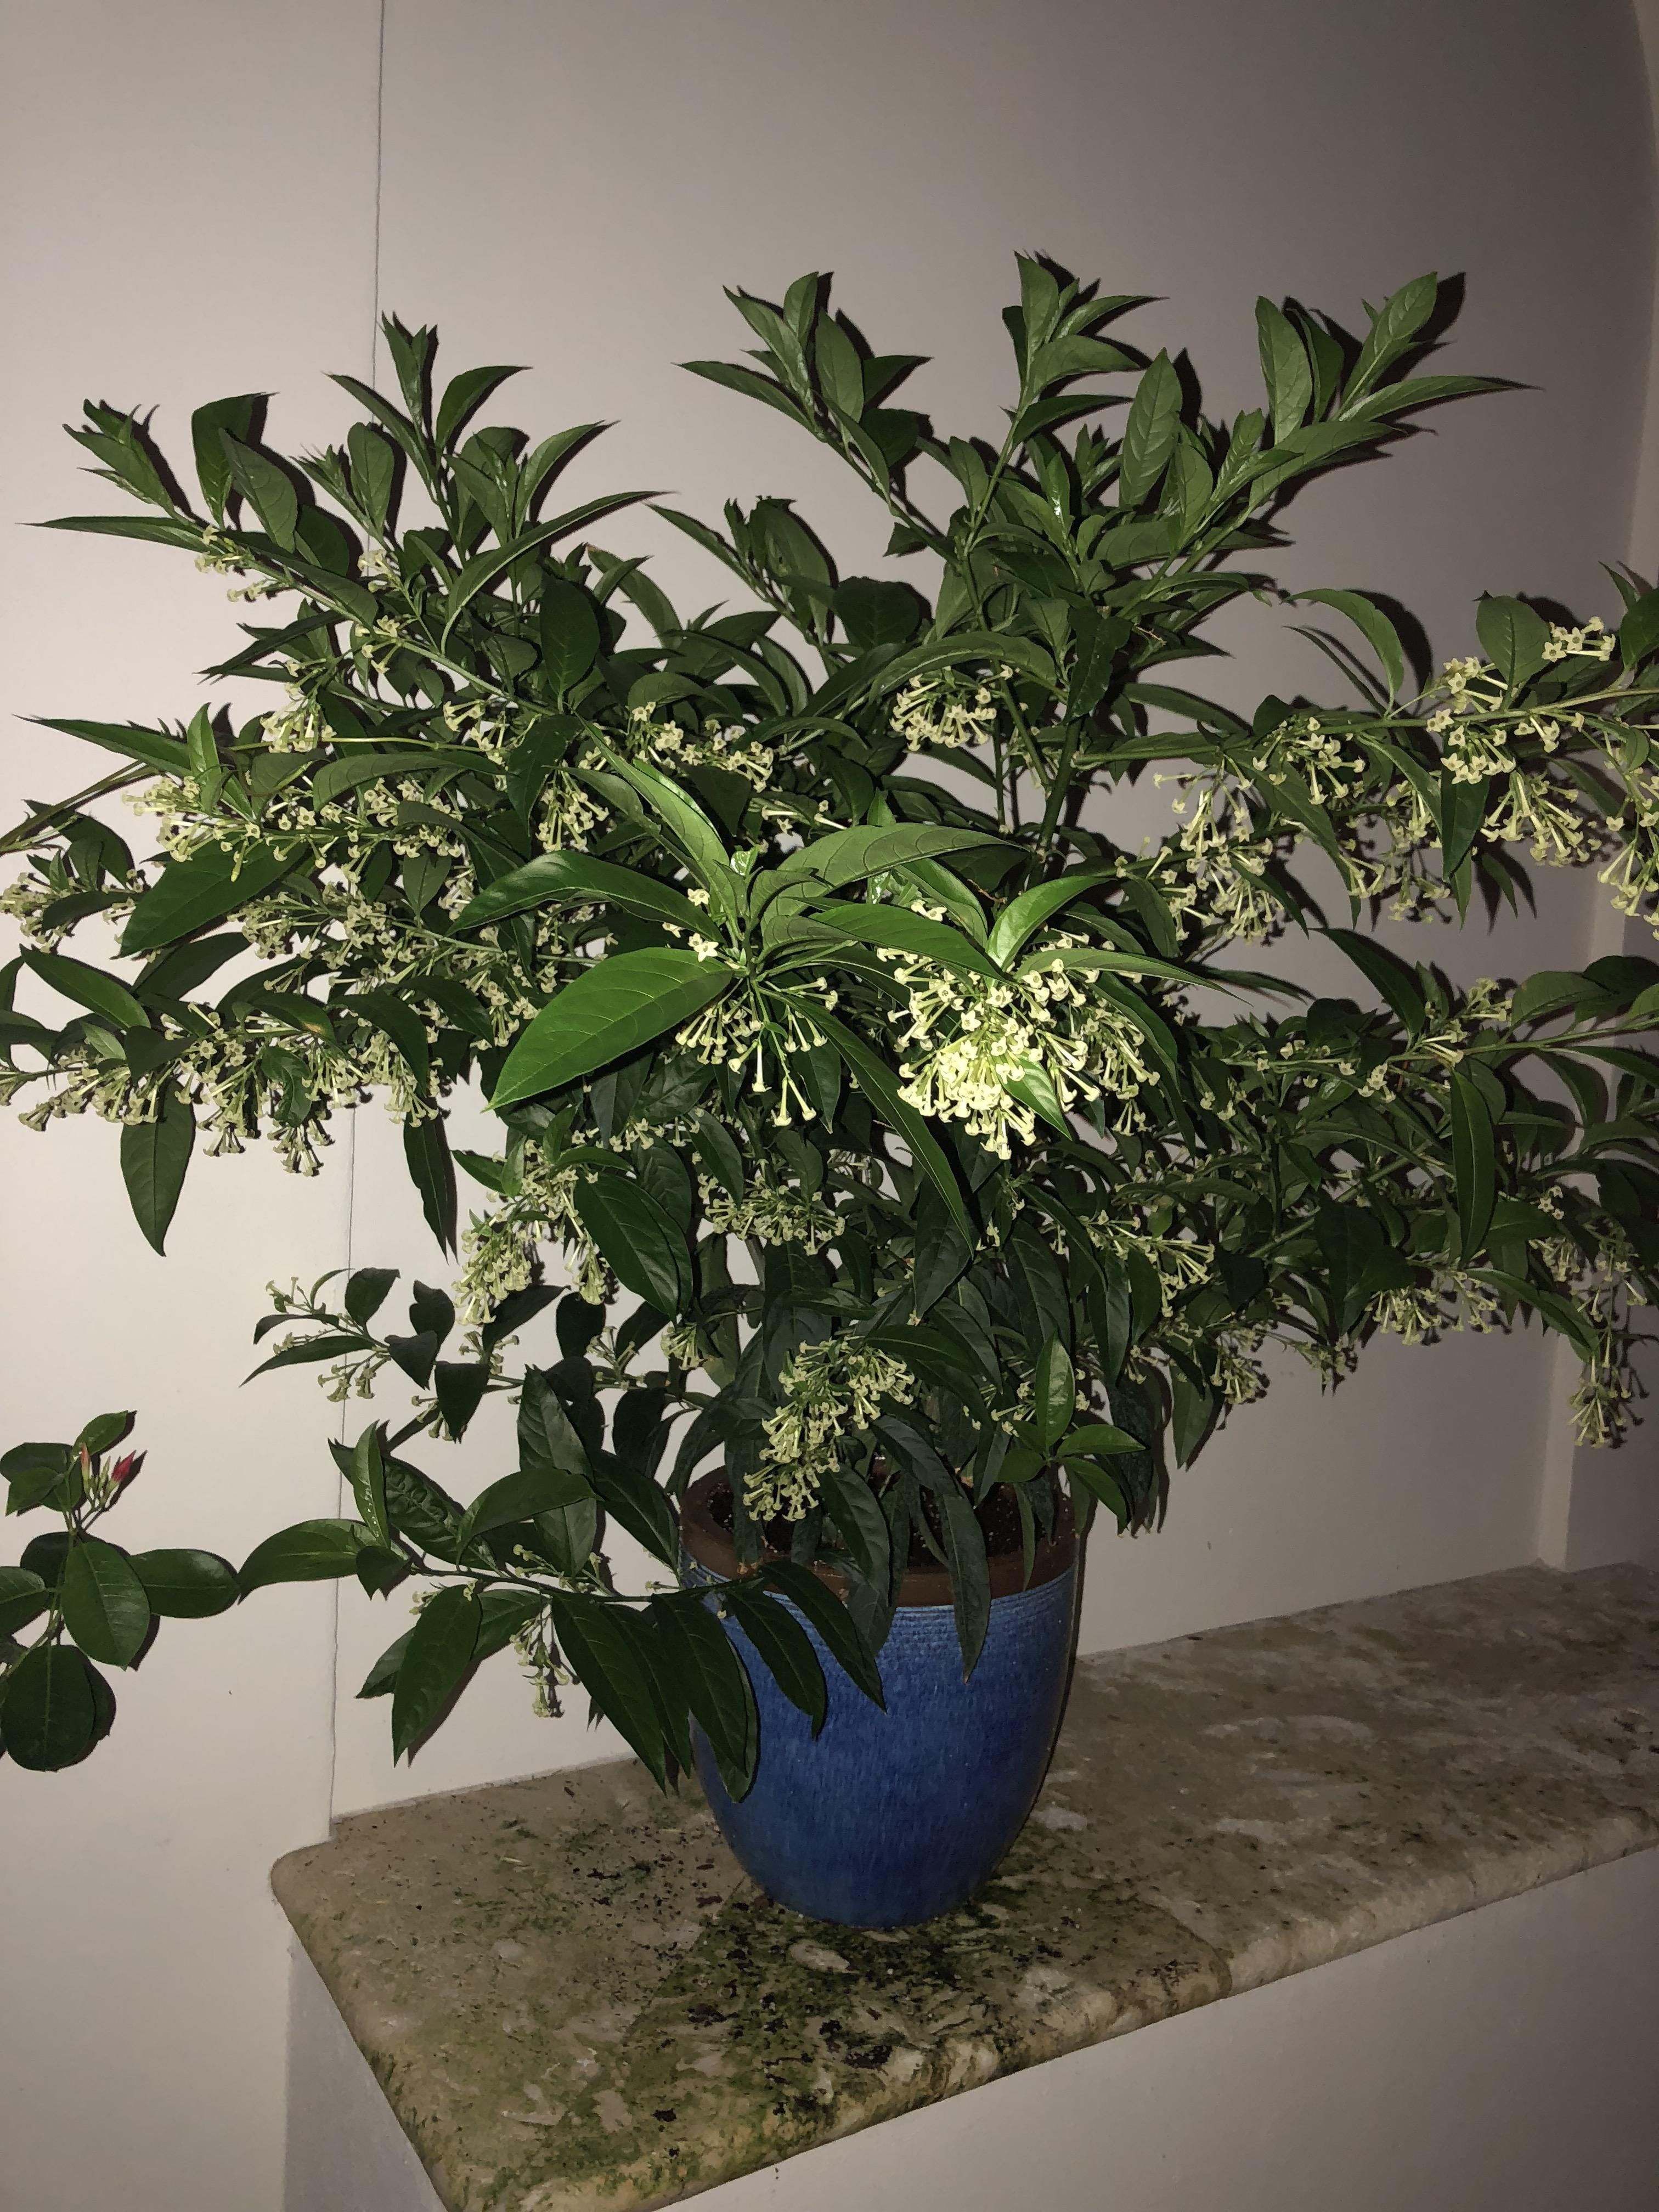 My Night Blooming Jasmine is out in full force  The smell is